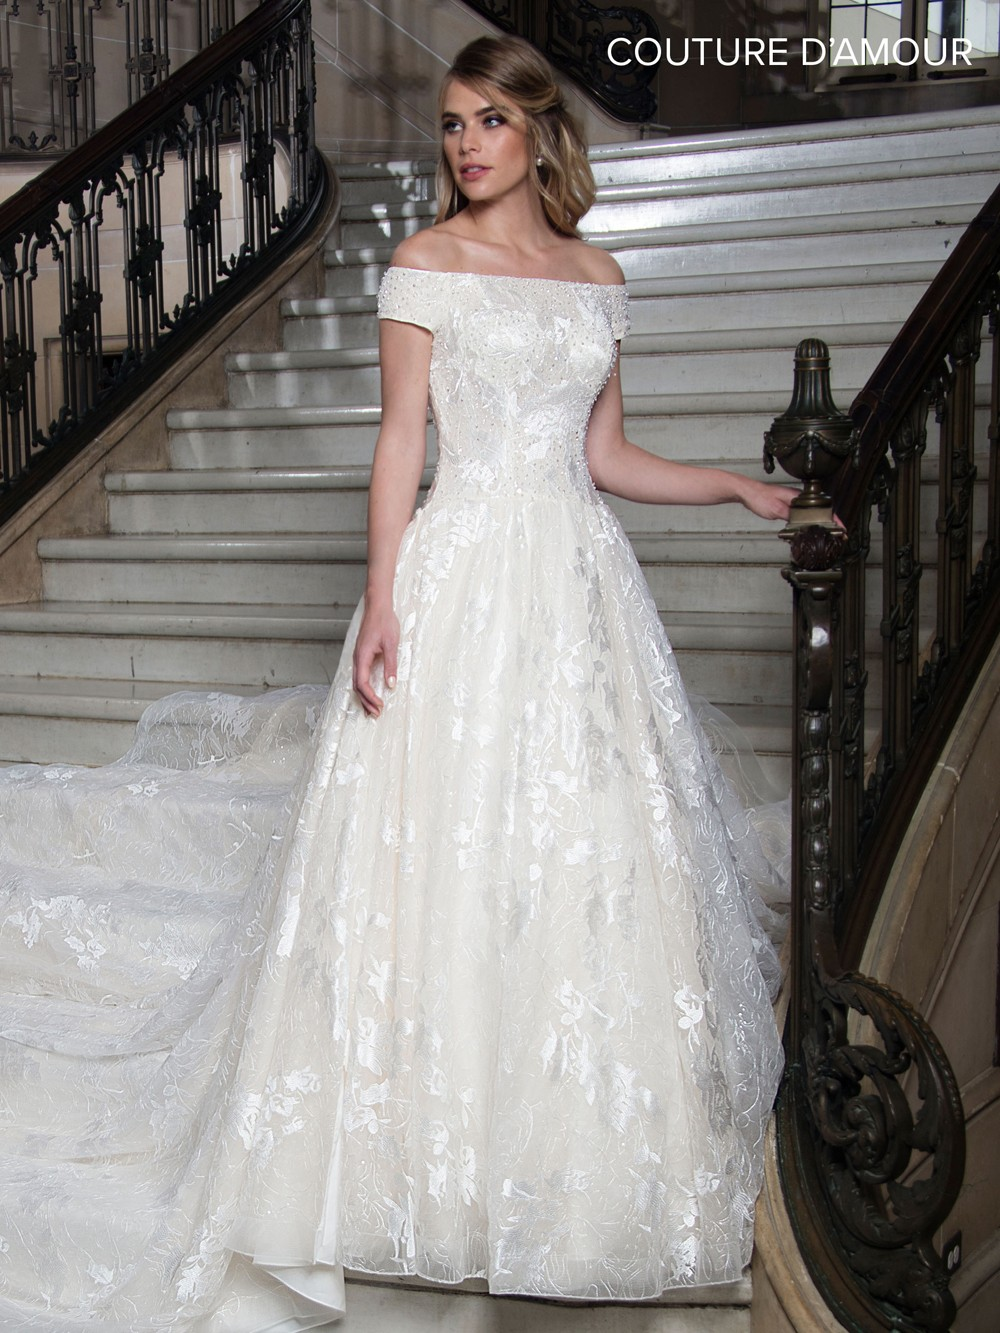 Marys Bridal MB4010 Dress - MadameBridal.com